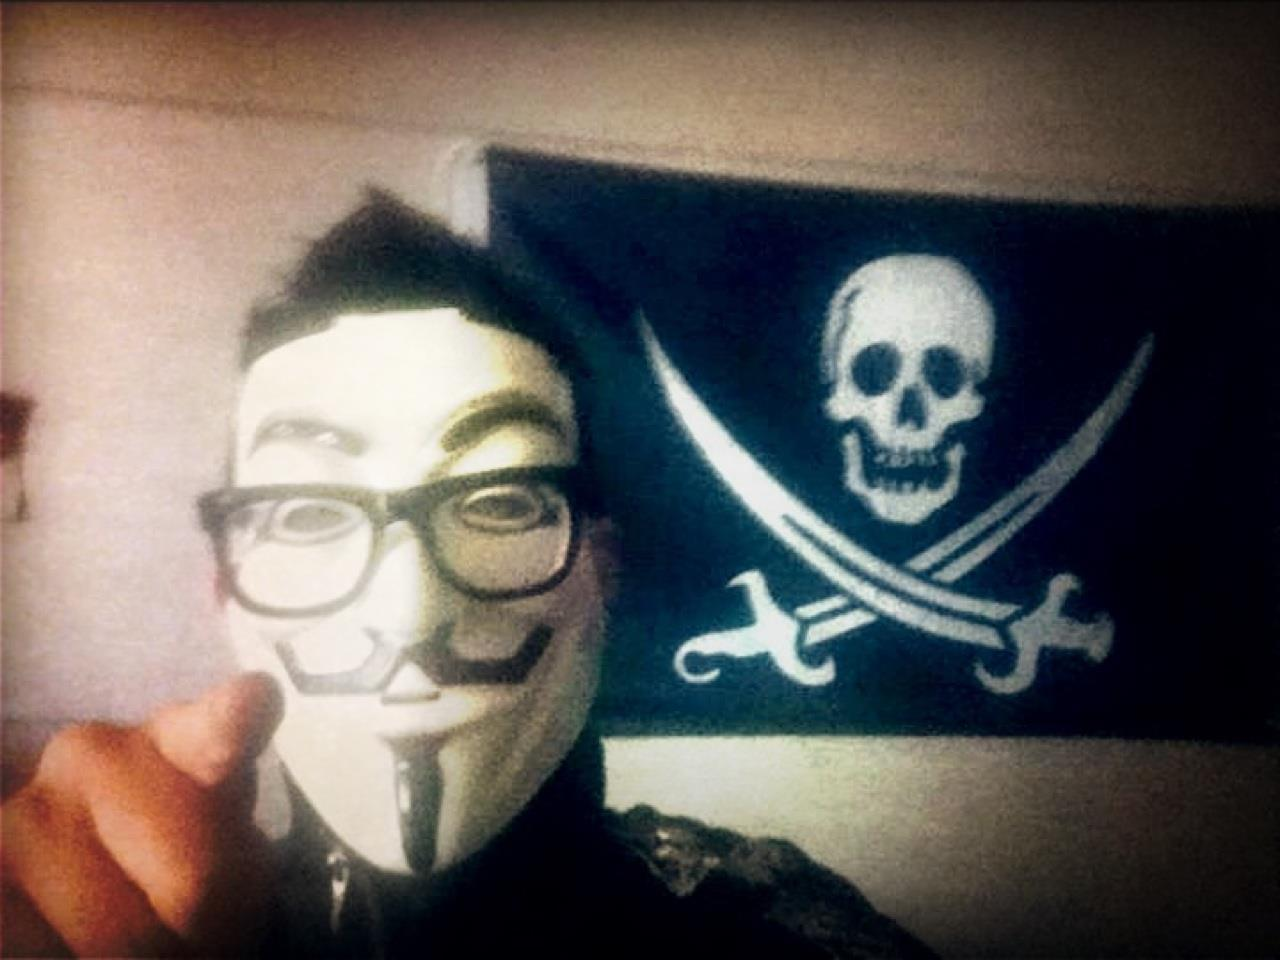 thepirateflag:  [Occupied] 신도림 w/V For Vendetta MASK by Cap'n @Socoolwen  Make your own Flag, visit  http://thepirateflag.tumblr.com   방송인 승원이형.. 요즘 외로우신.듯 허다.  오리고기에 소주 같이 먹으러 가야지.